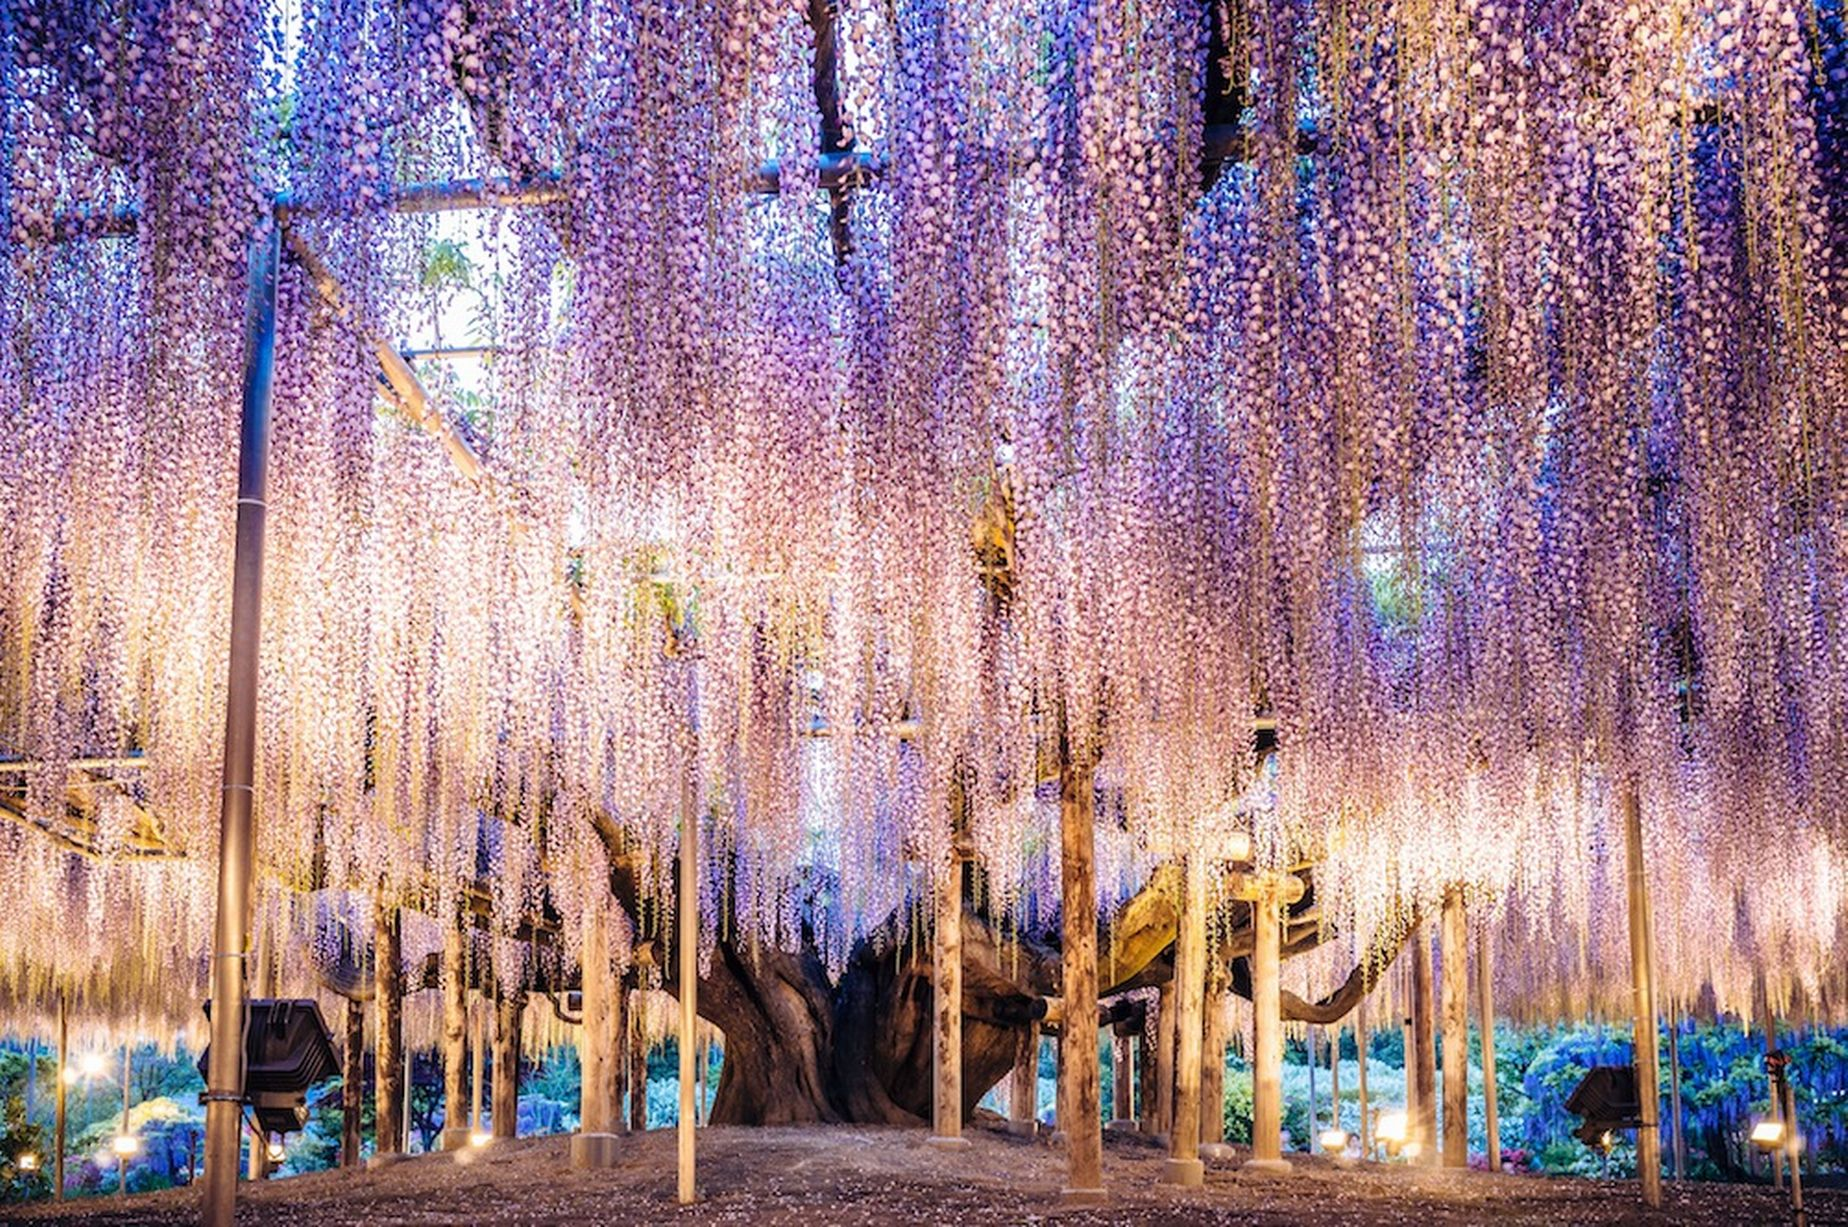 PAY-Ashikaga-Flower-Park (2)